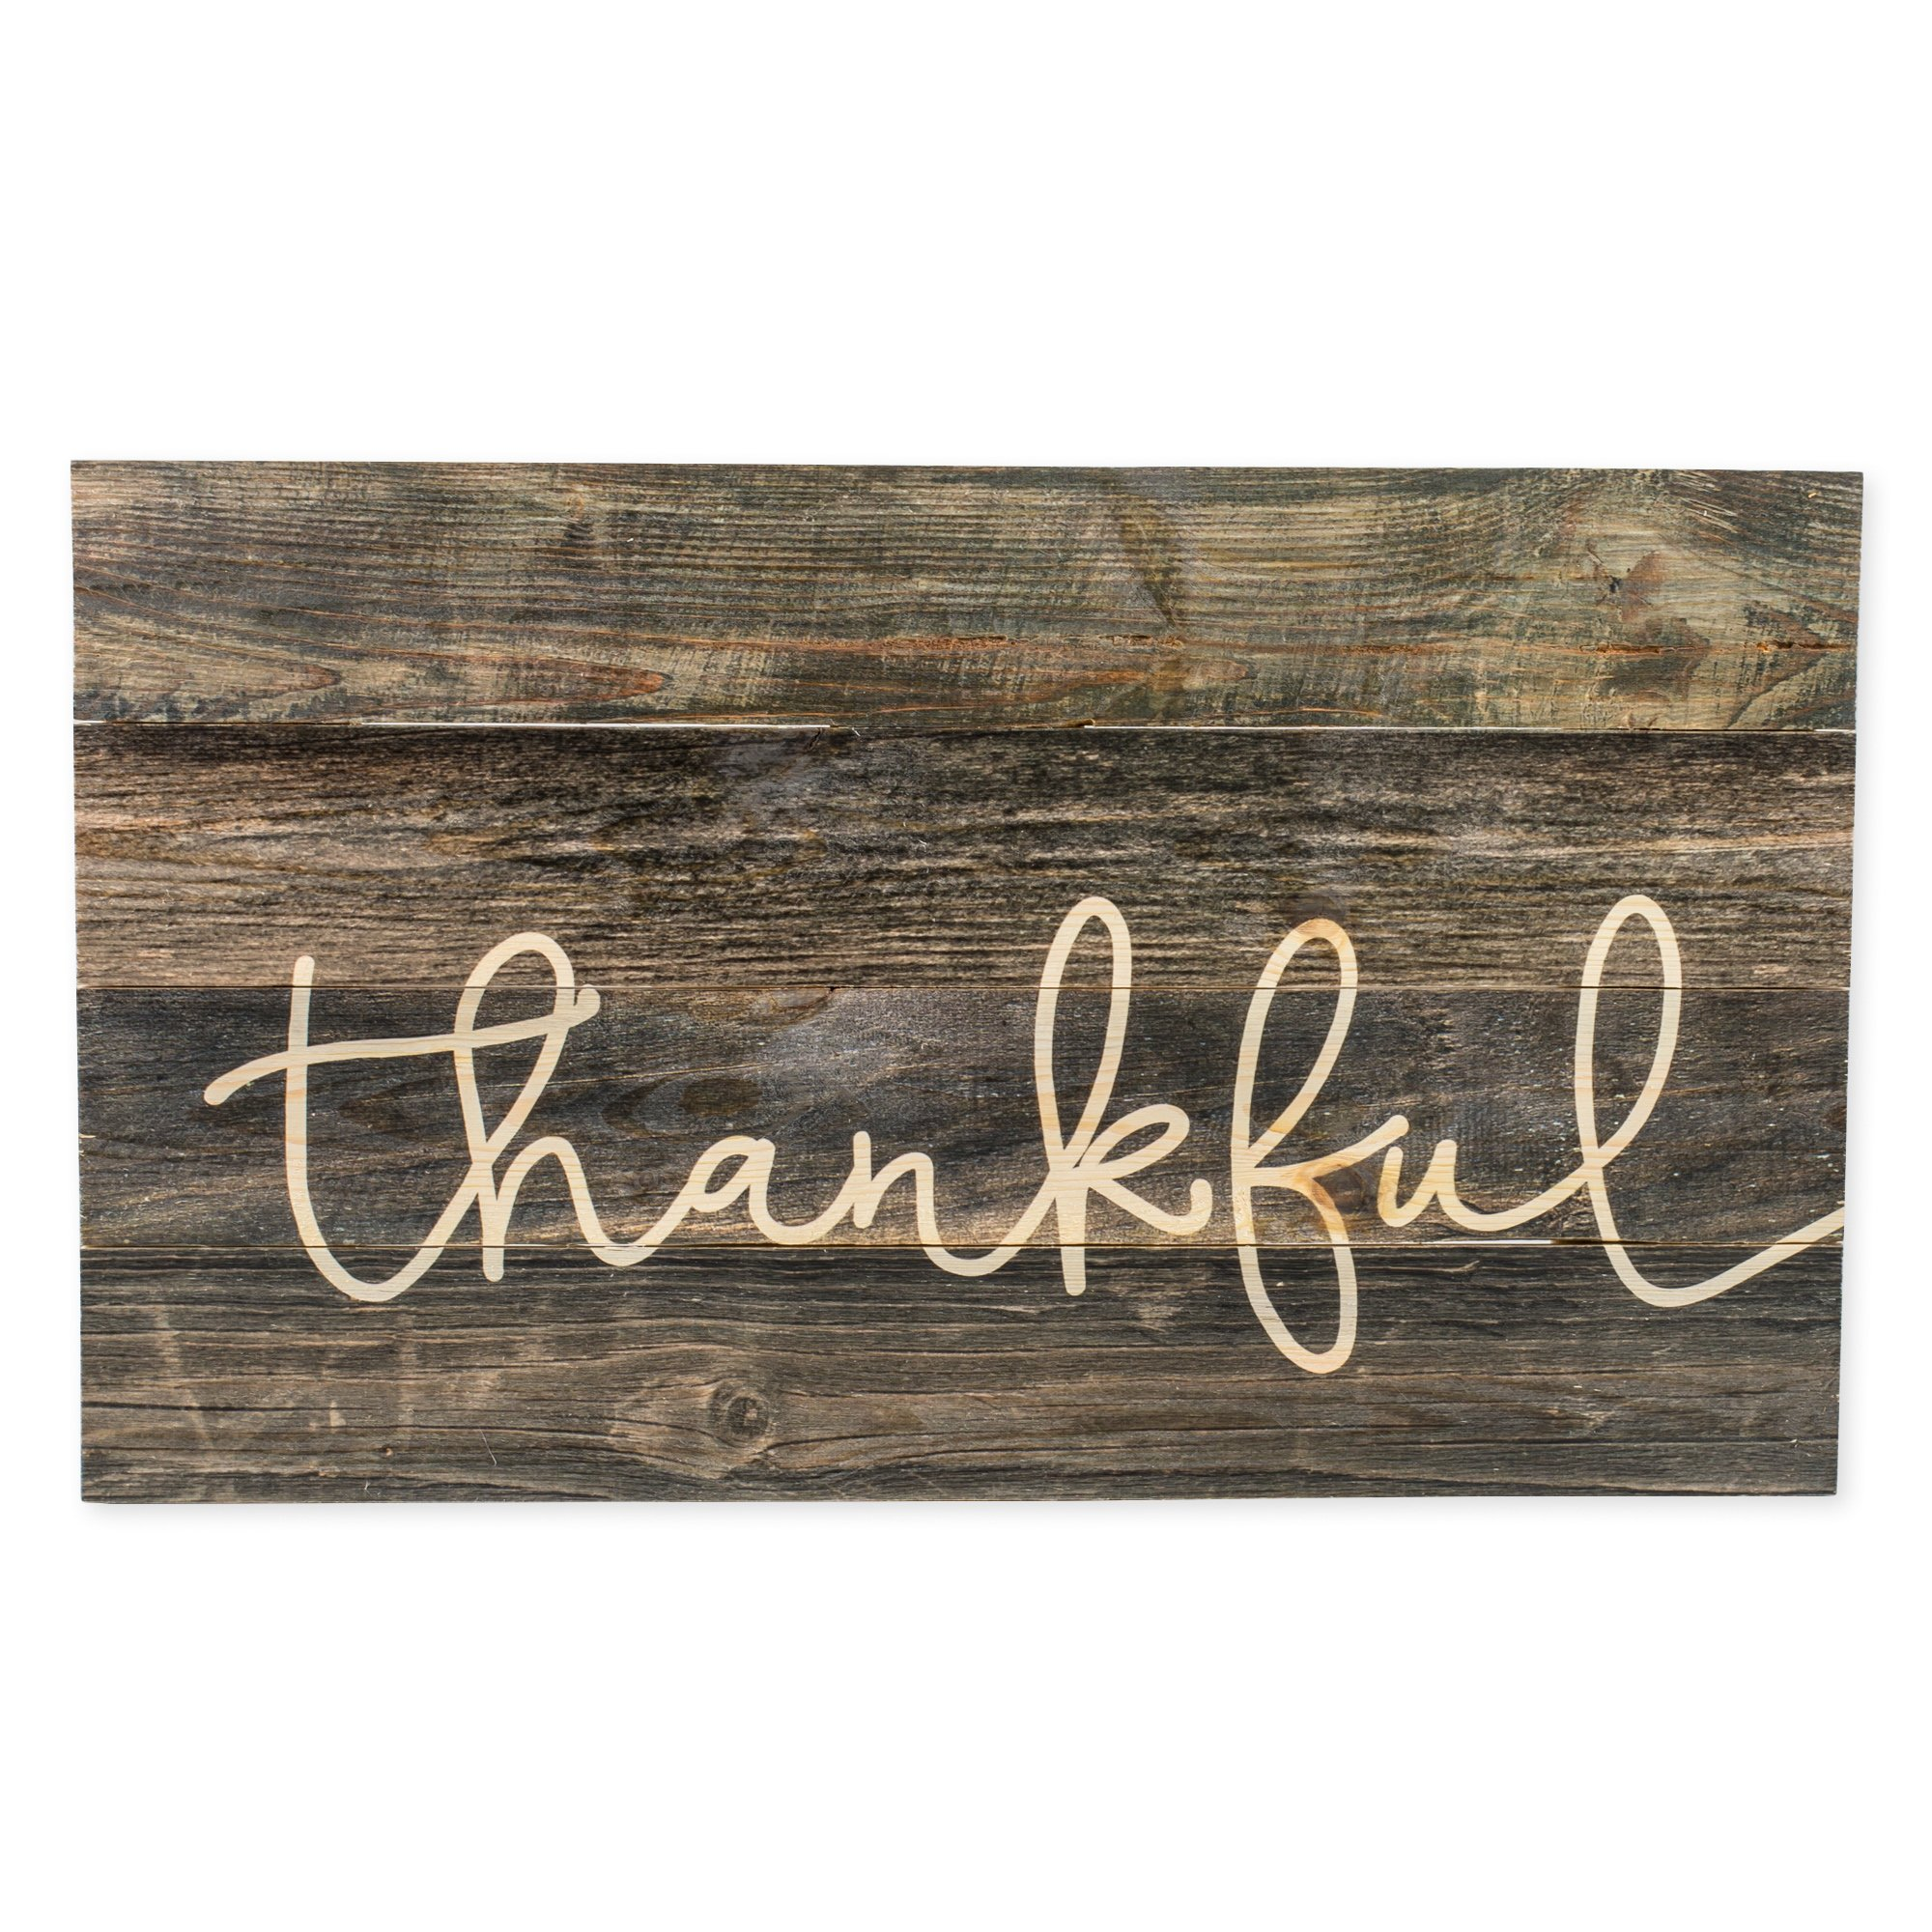 Thankful Grey Distressed 24 x 14 Inch Pine Wood Pallet Decorative Hanging Wall Plaque